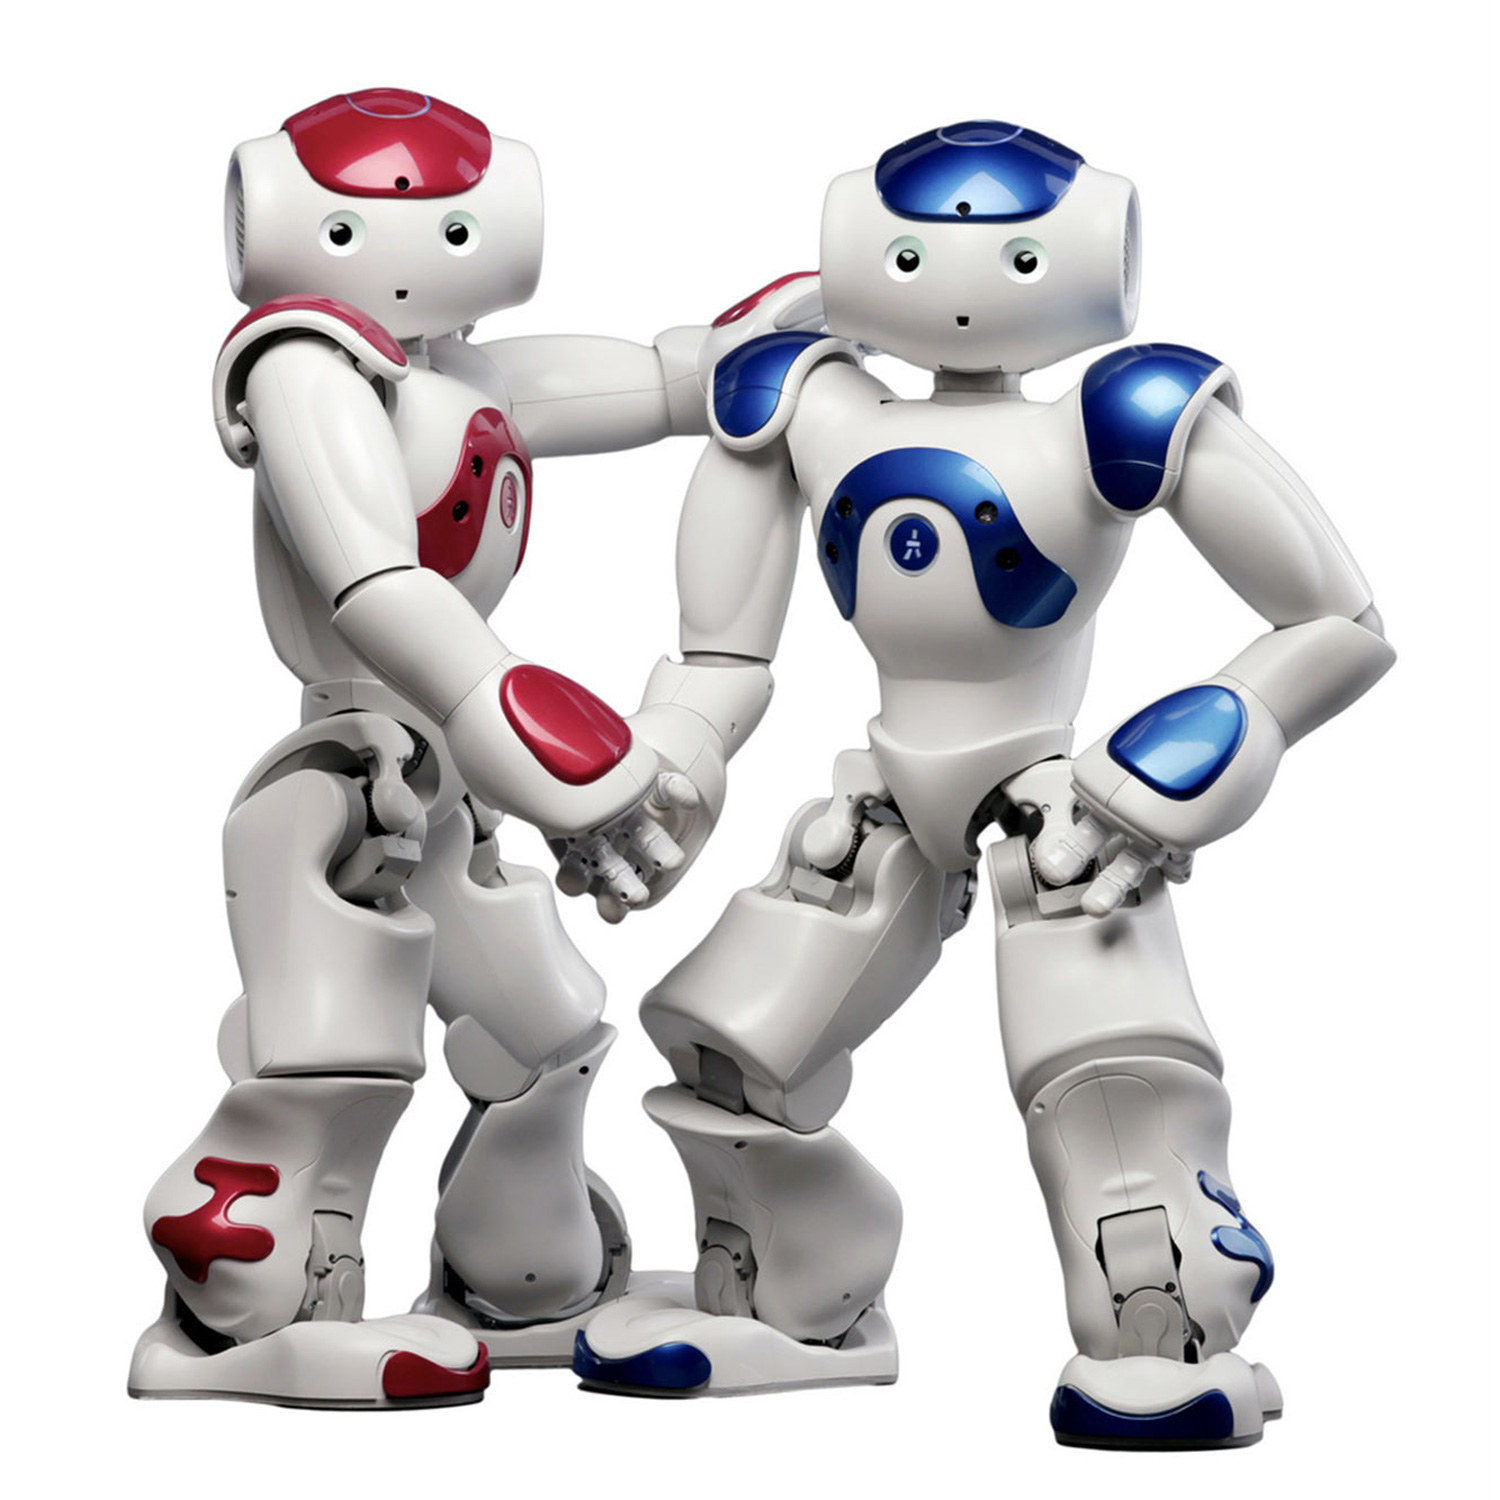 Smart Robot Lawrence Special Deal & Free Shipping Now